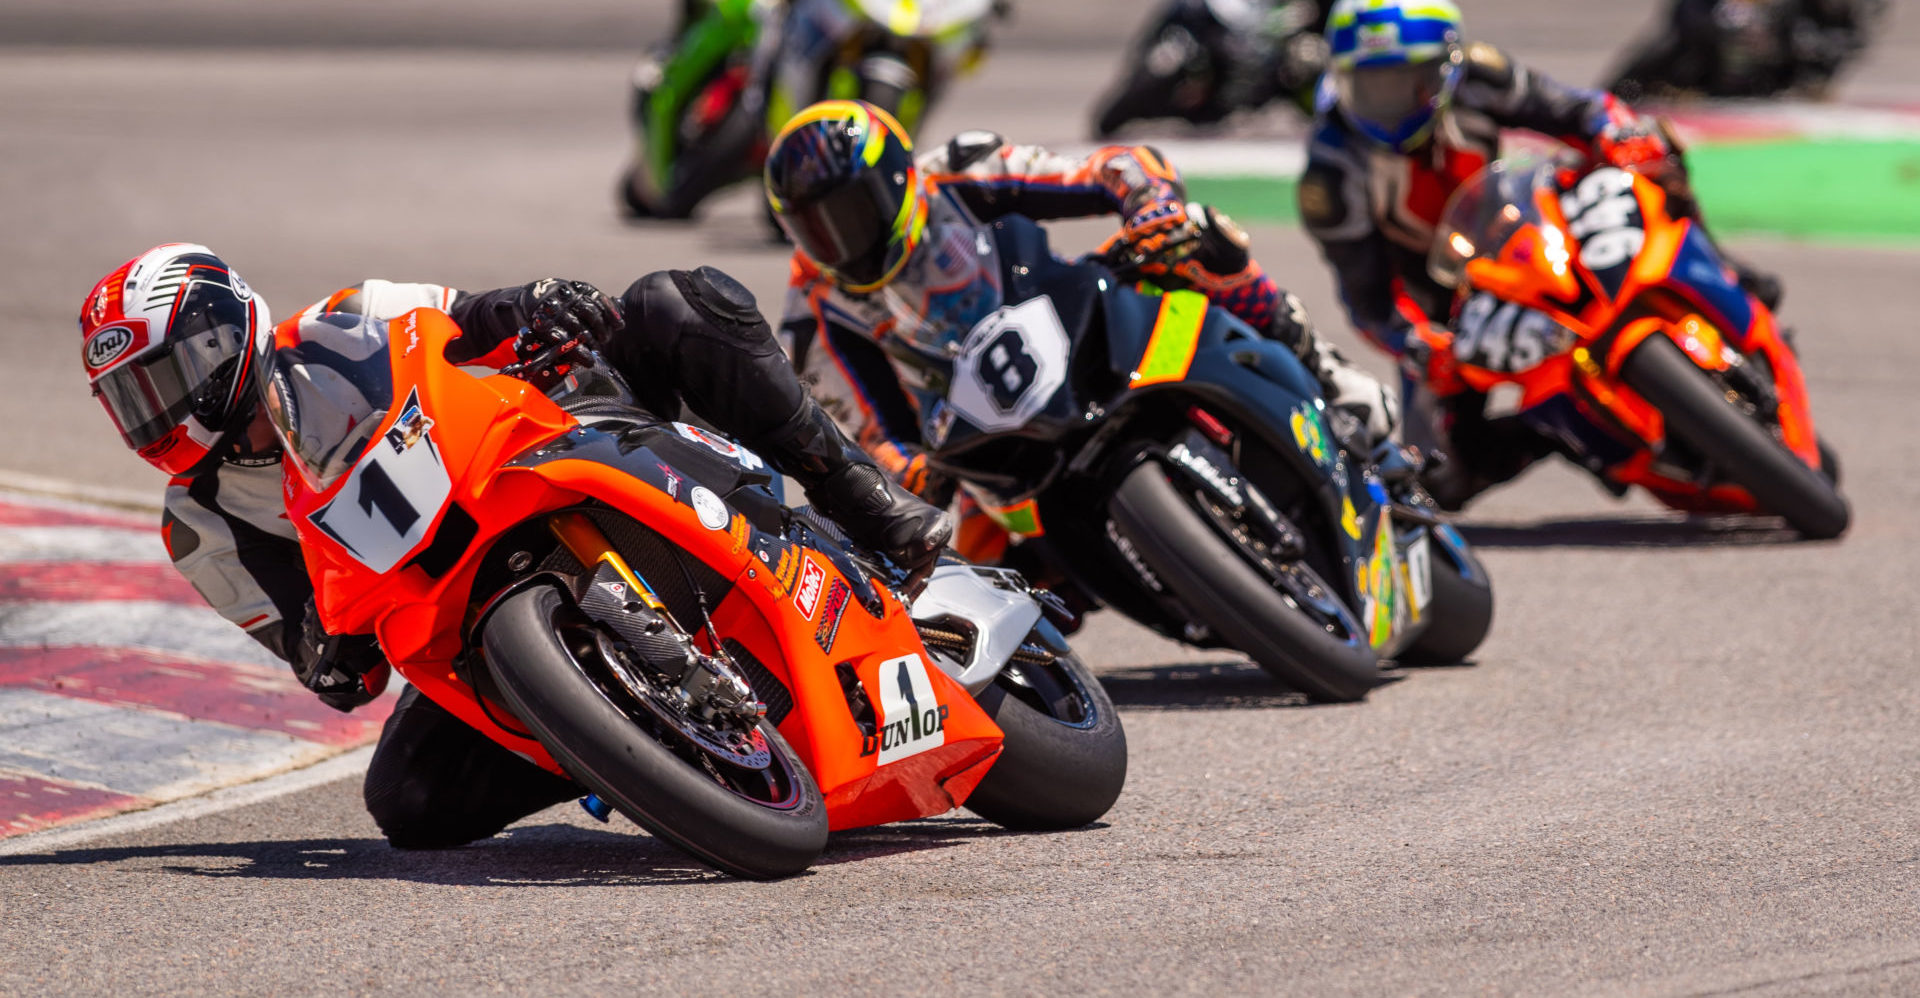 MRA #1 plate holder Ryan Burke leads a group of MRA racers. Photo by Jim Browning/Rocky Mountain Photography, courtesy MRA.